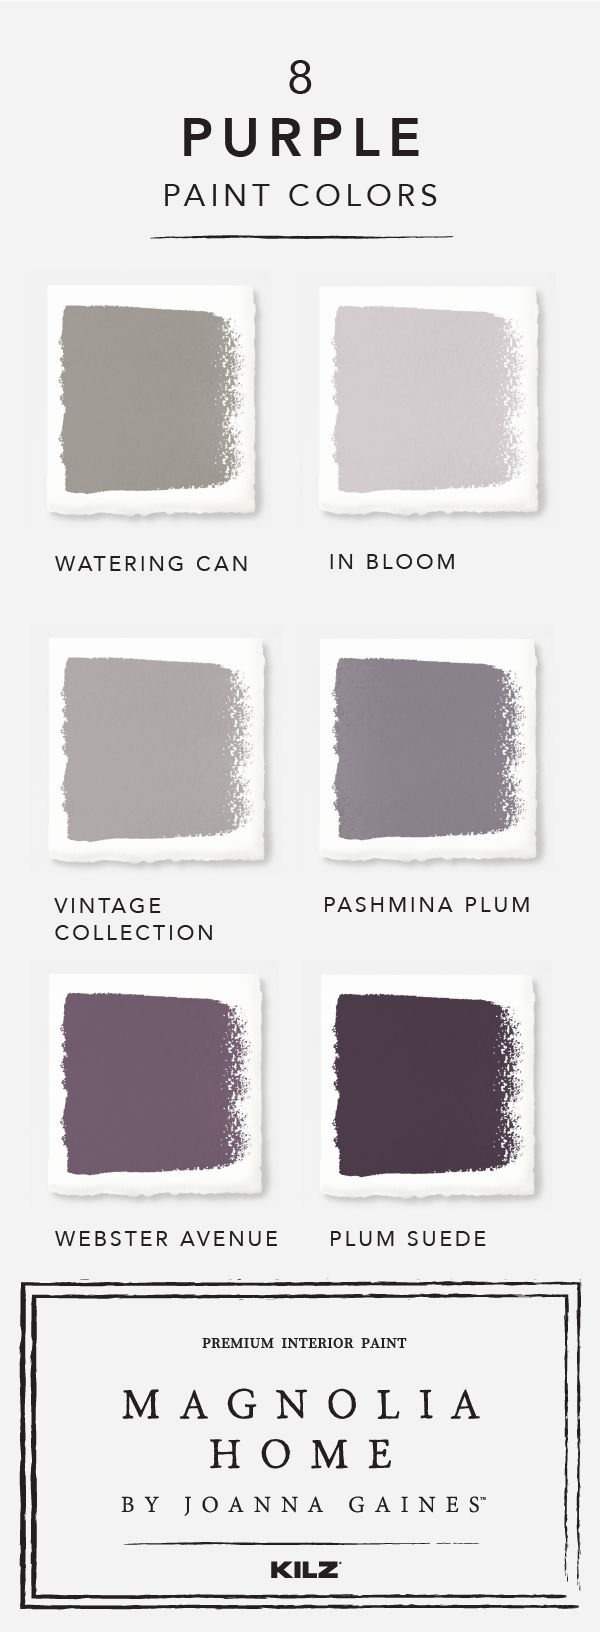 Bring your design vision together with purple hues from Magnolia Home by Joanna Gaines™ paint collection. Explore a range of shades like In Bloom, Vintage Collection, and Webster Avenue to find the perfect color to fit your unique sense of style.